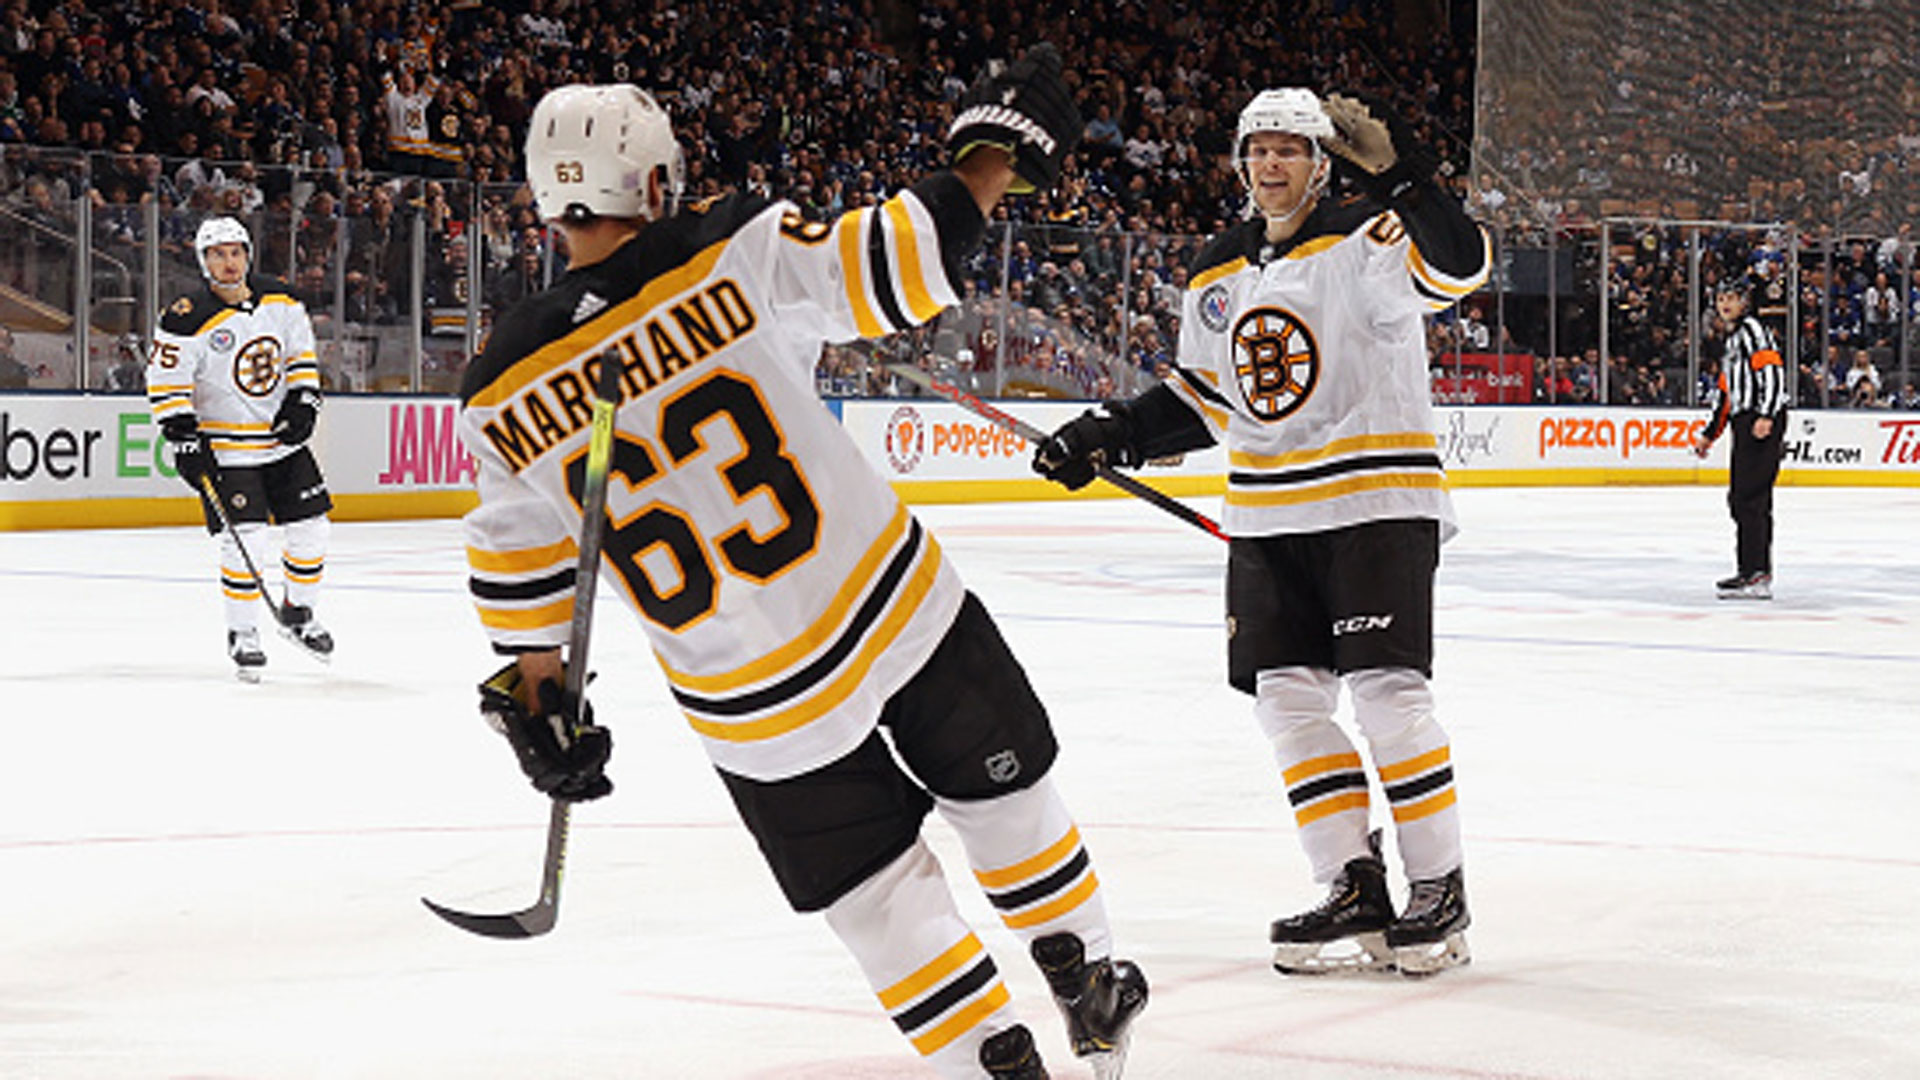 Leafs 'look to be in trouble' after loss to Bruins